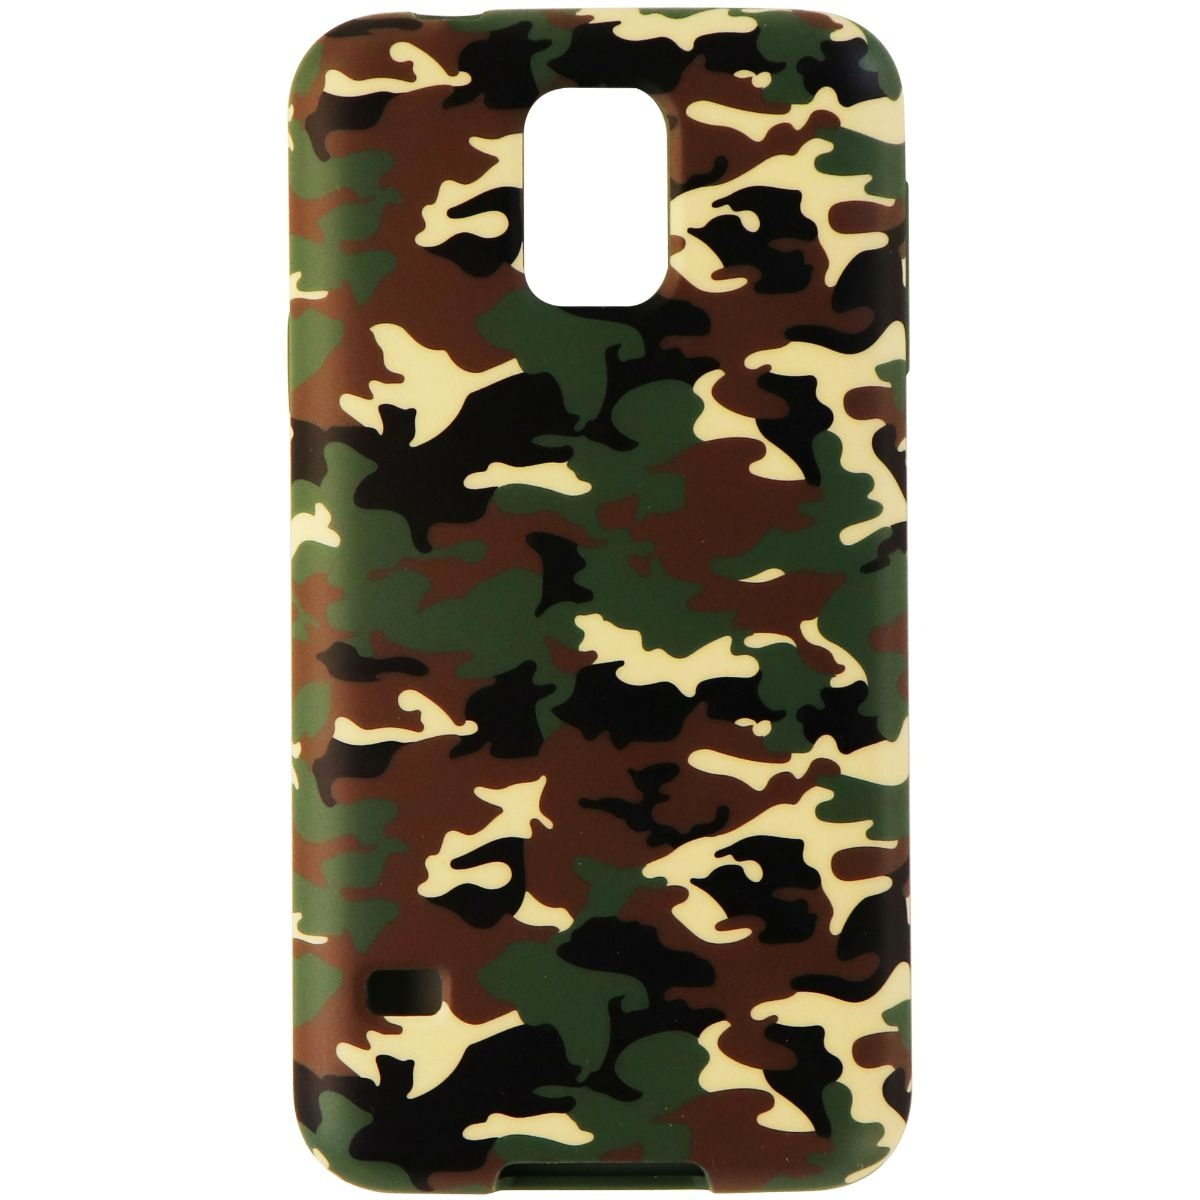 Agent18 Flexshield Case for Samsung Galaxy S5 Smartphone - Green Camo